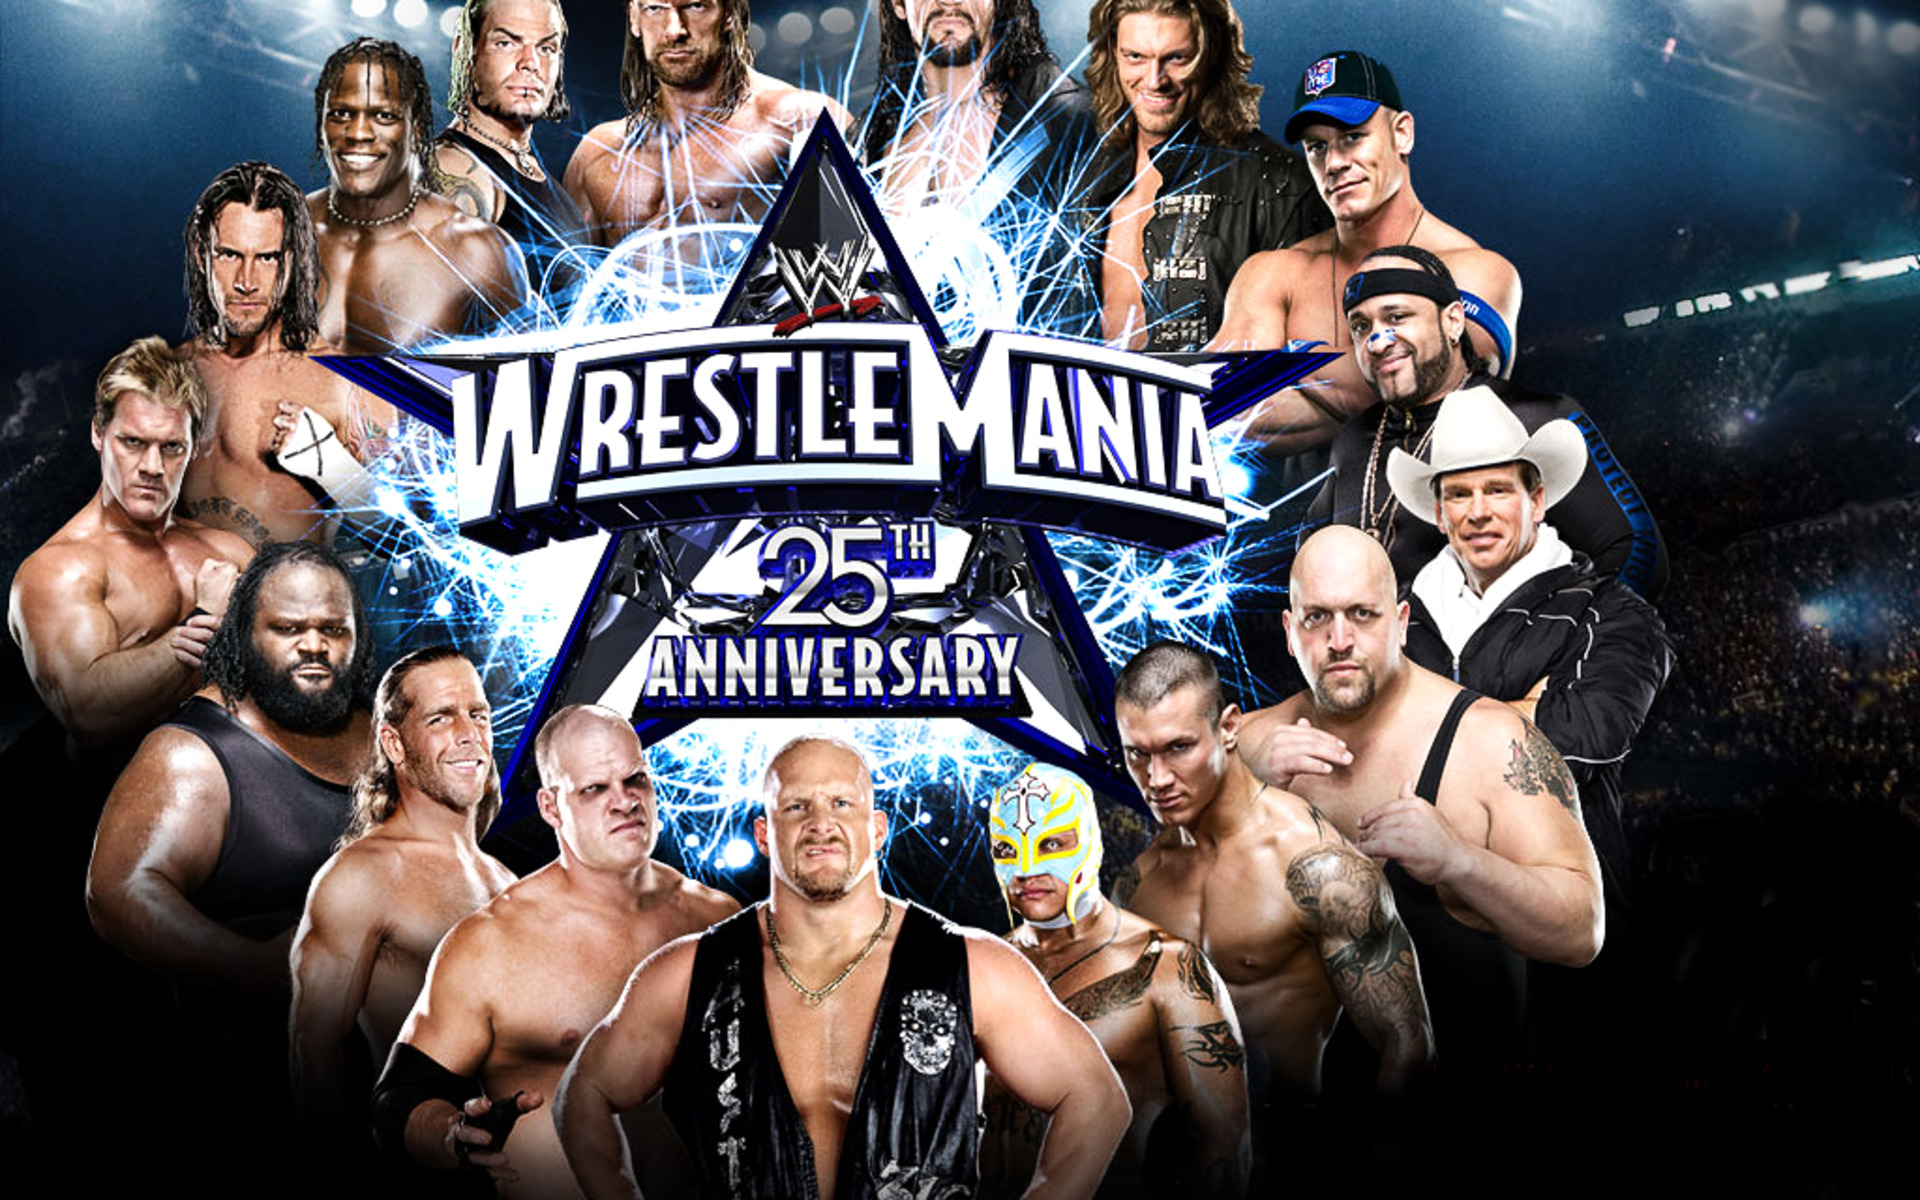 WWE Wrestling Wrestle Mania 1920x1200 WIDE Wrestling WWE 1920x1200